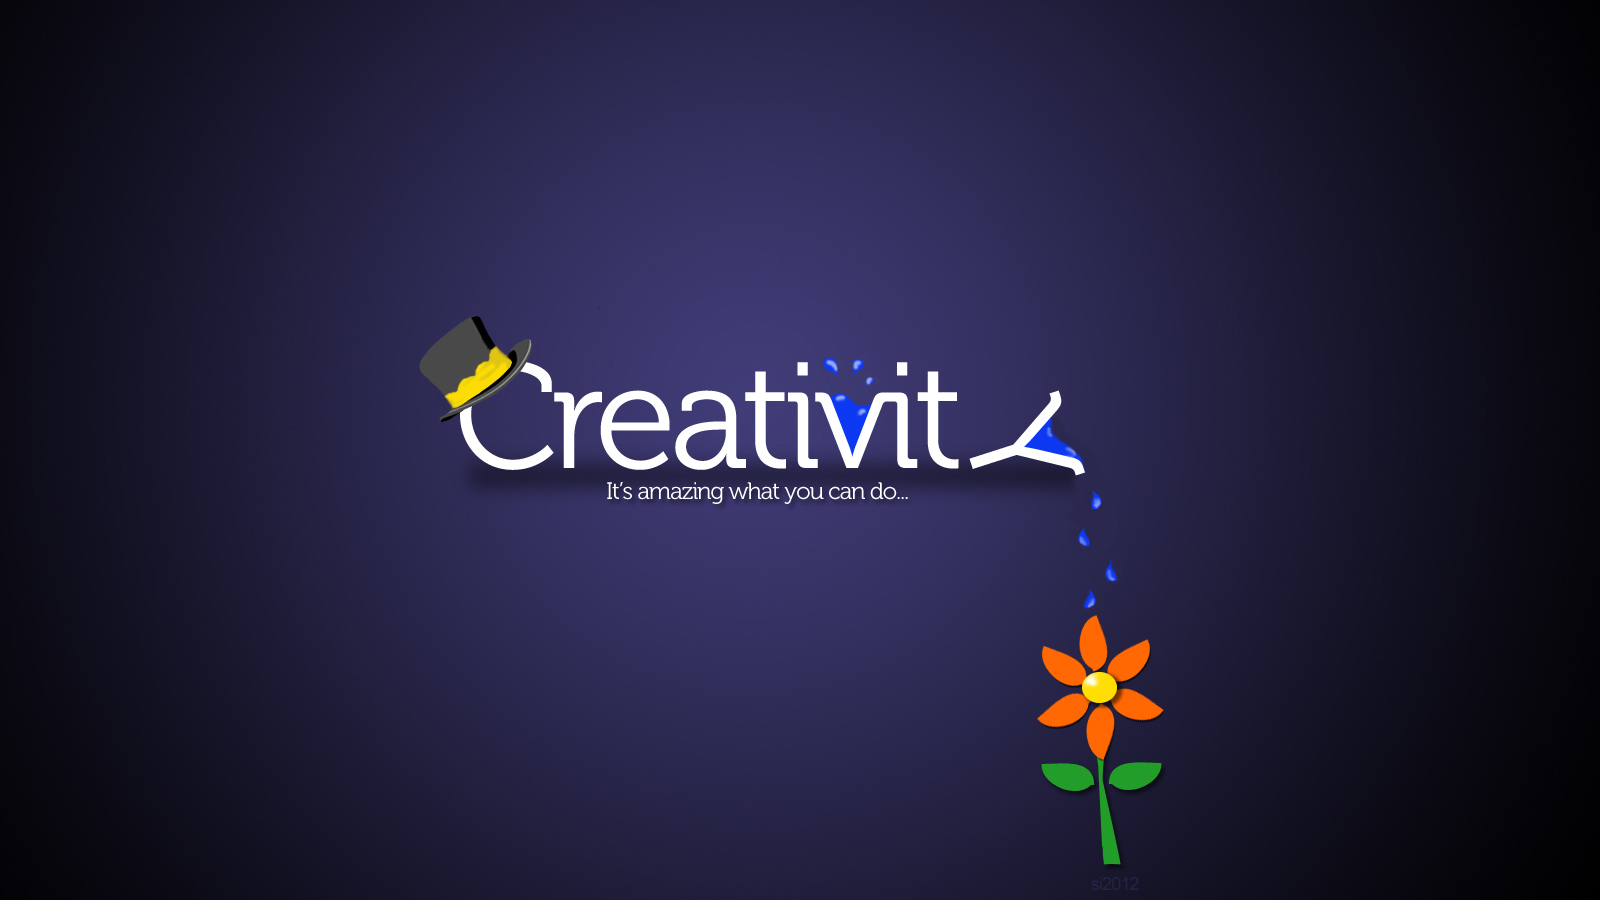 Creativity Wallpaper